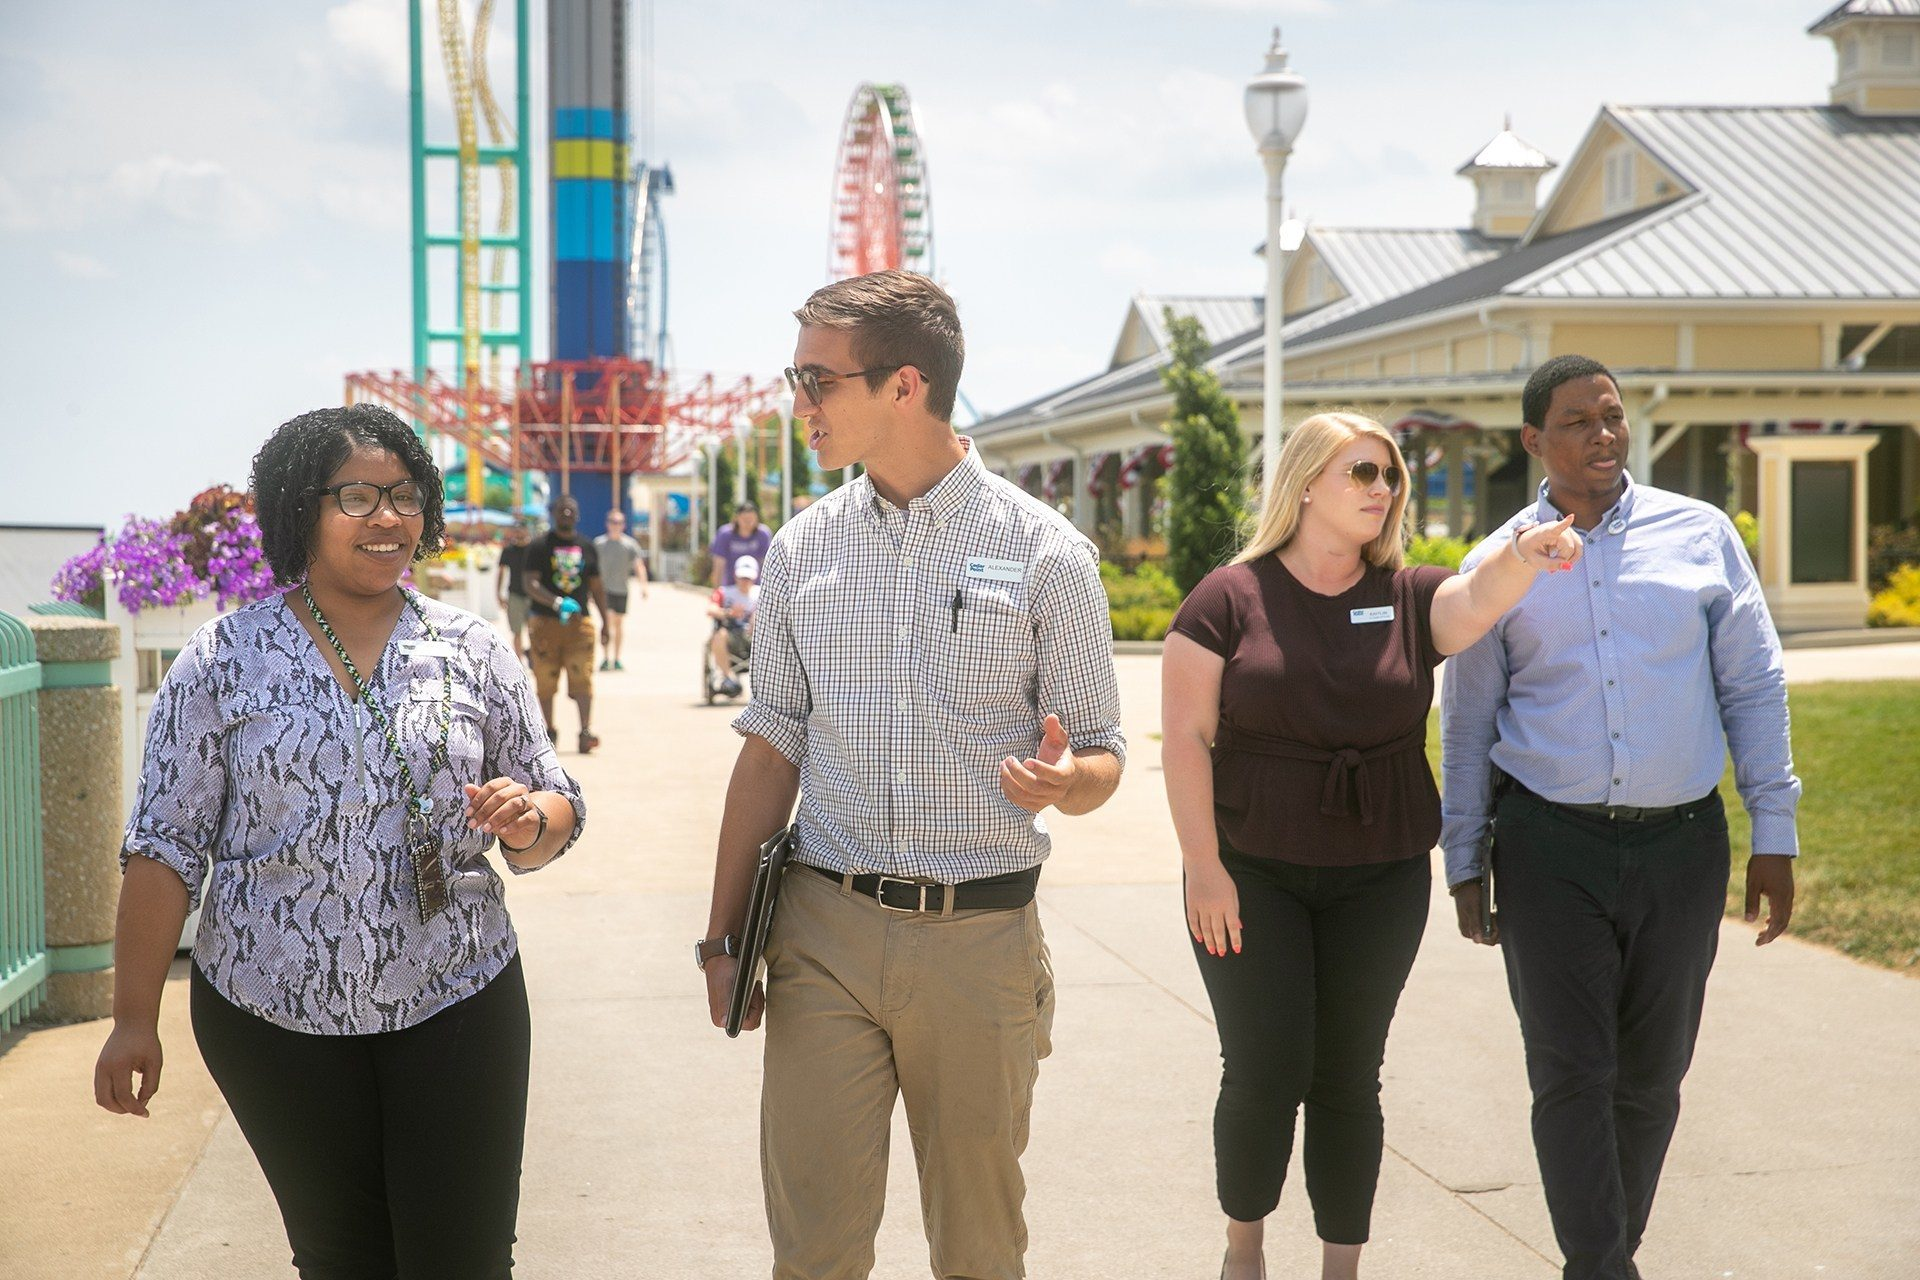 BGSU resort and attractions management students learning on the promenade at Cedar Point theme park in Sandusky, Ohio.